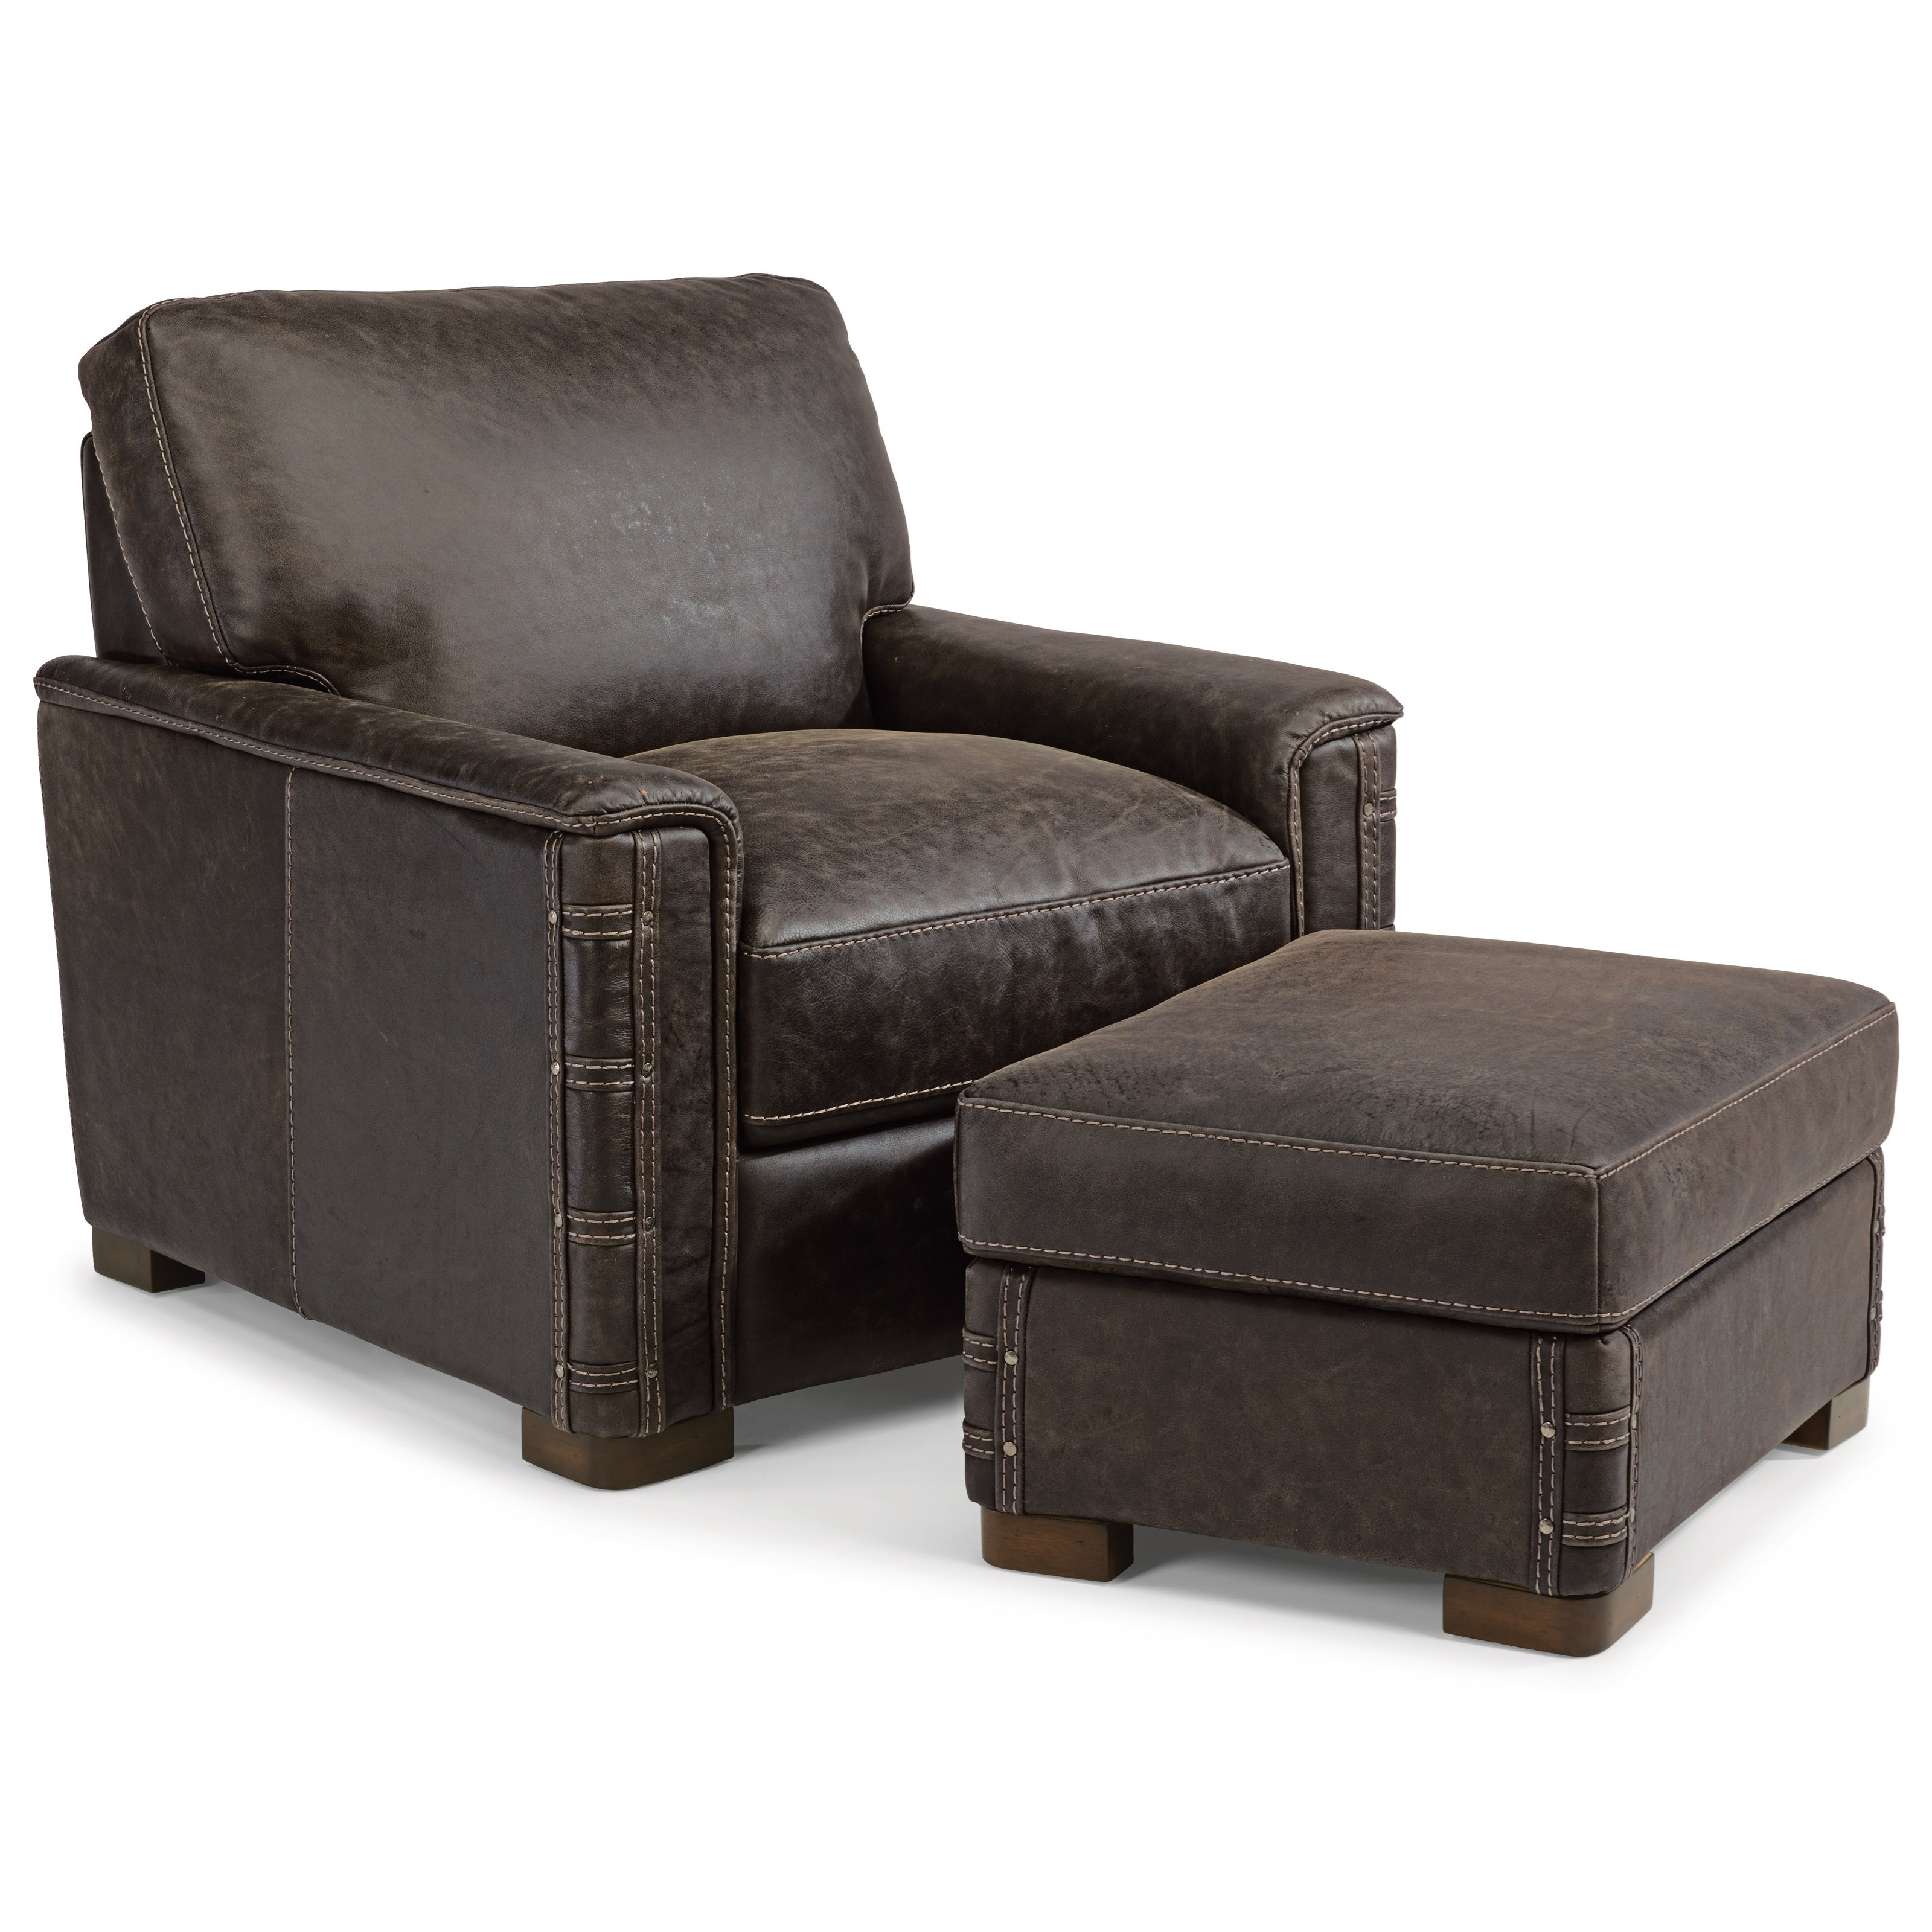 Flexsteel latitudes lomax rustic leather chair and for Chair ottoman